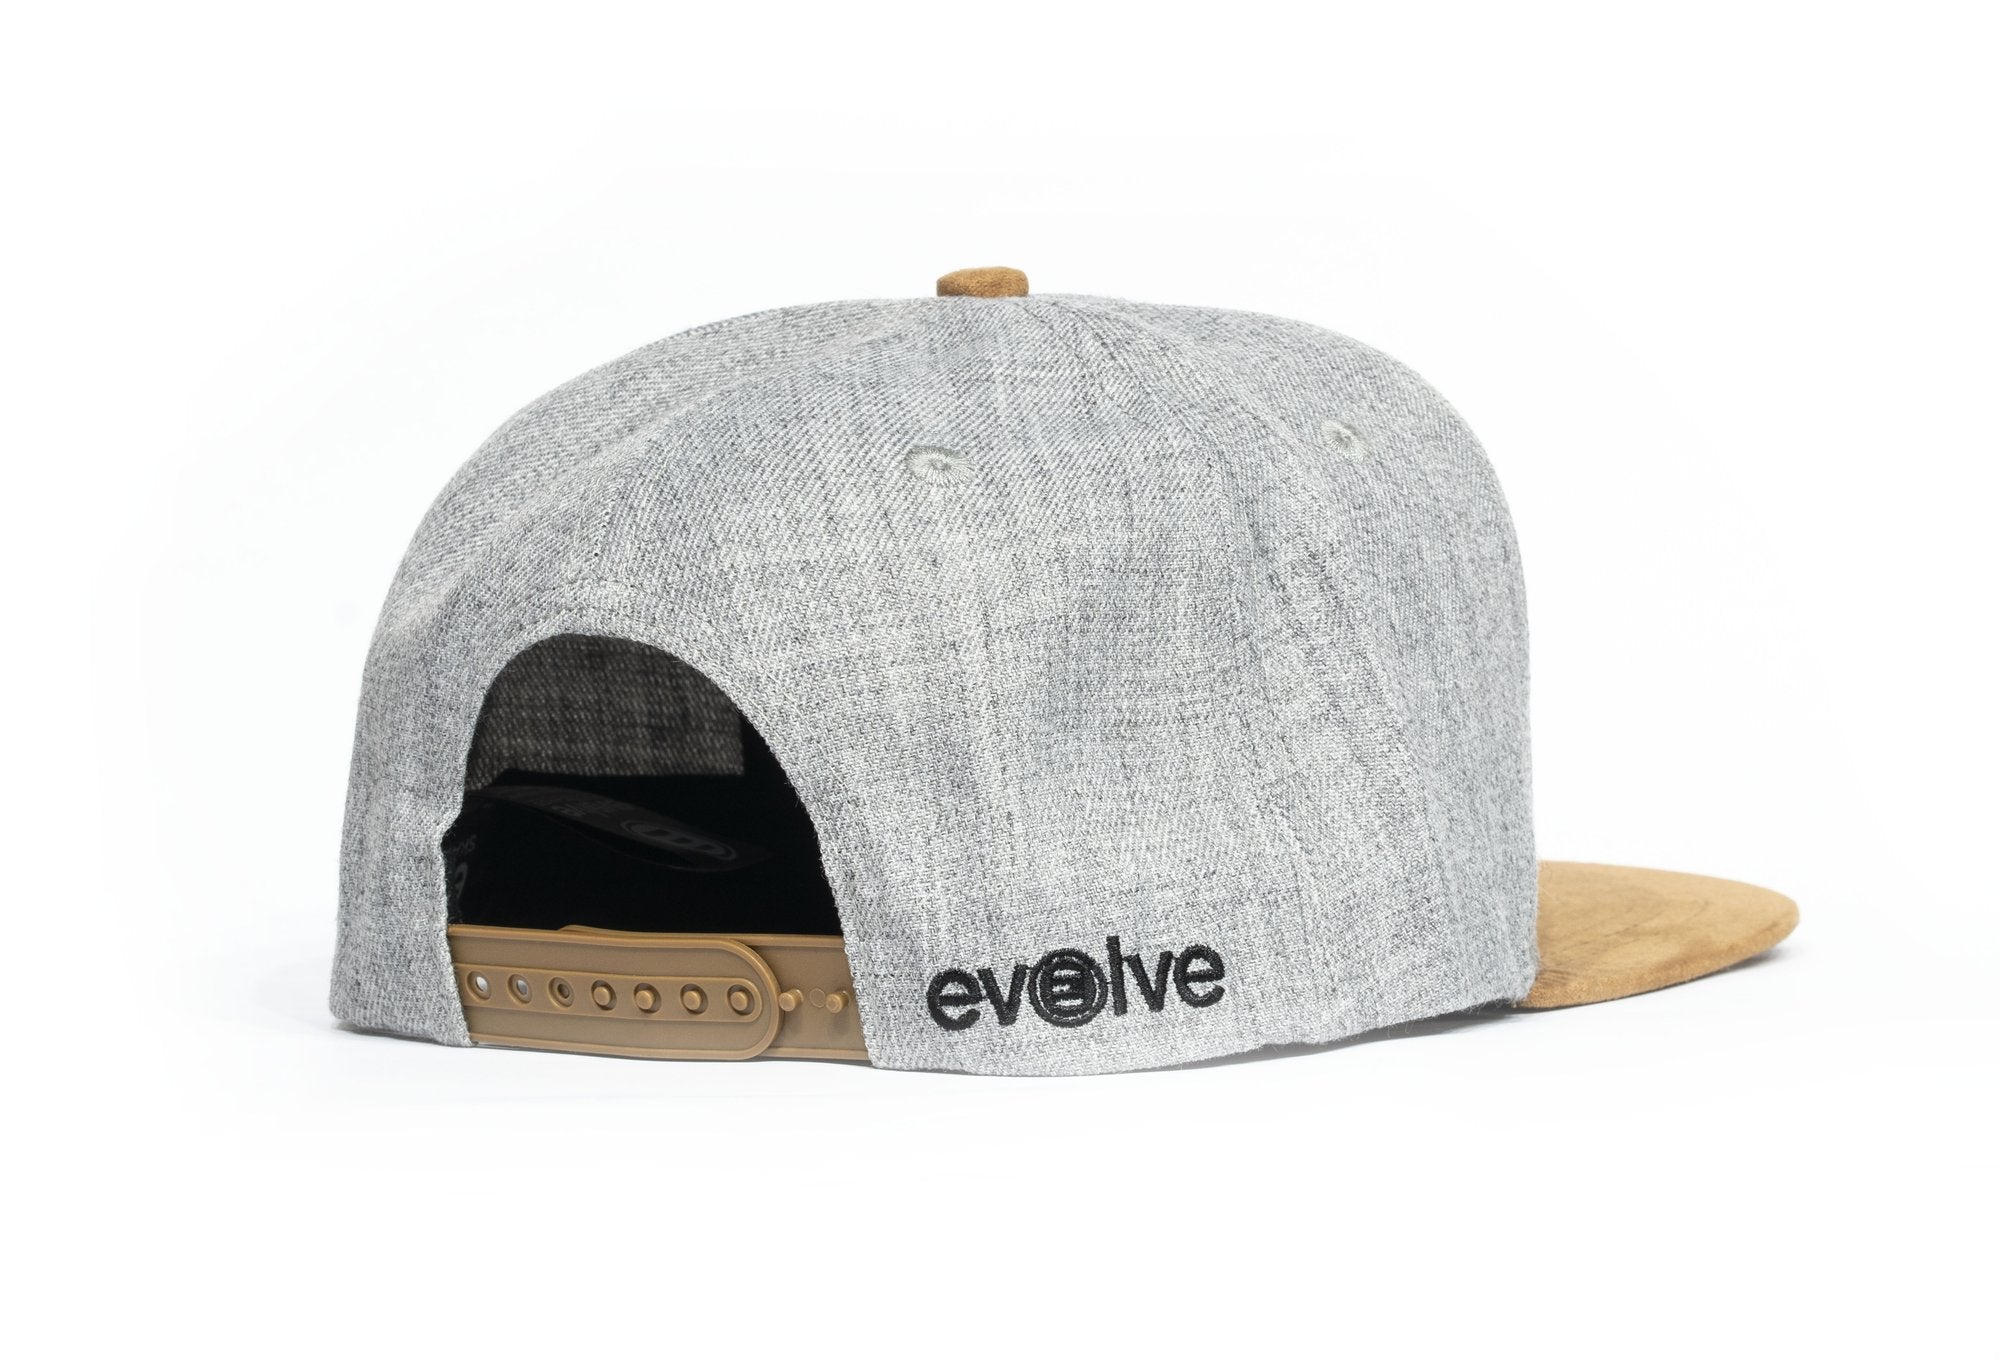 Gorro Evolve Skateboards 2021